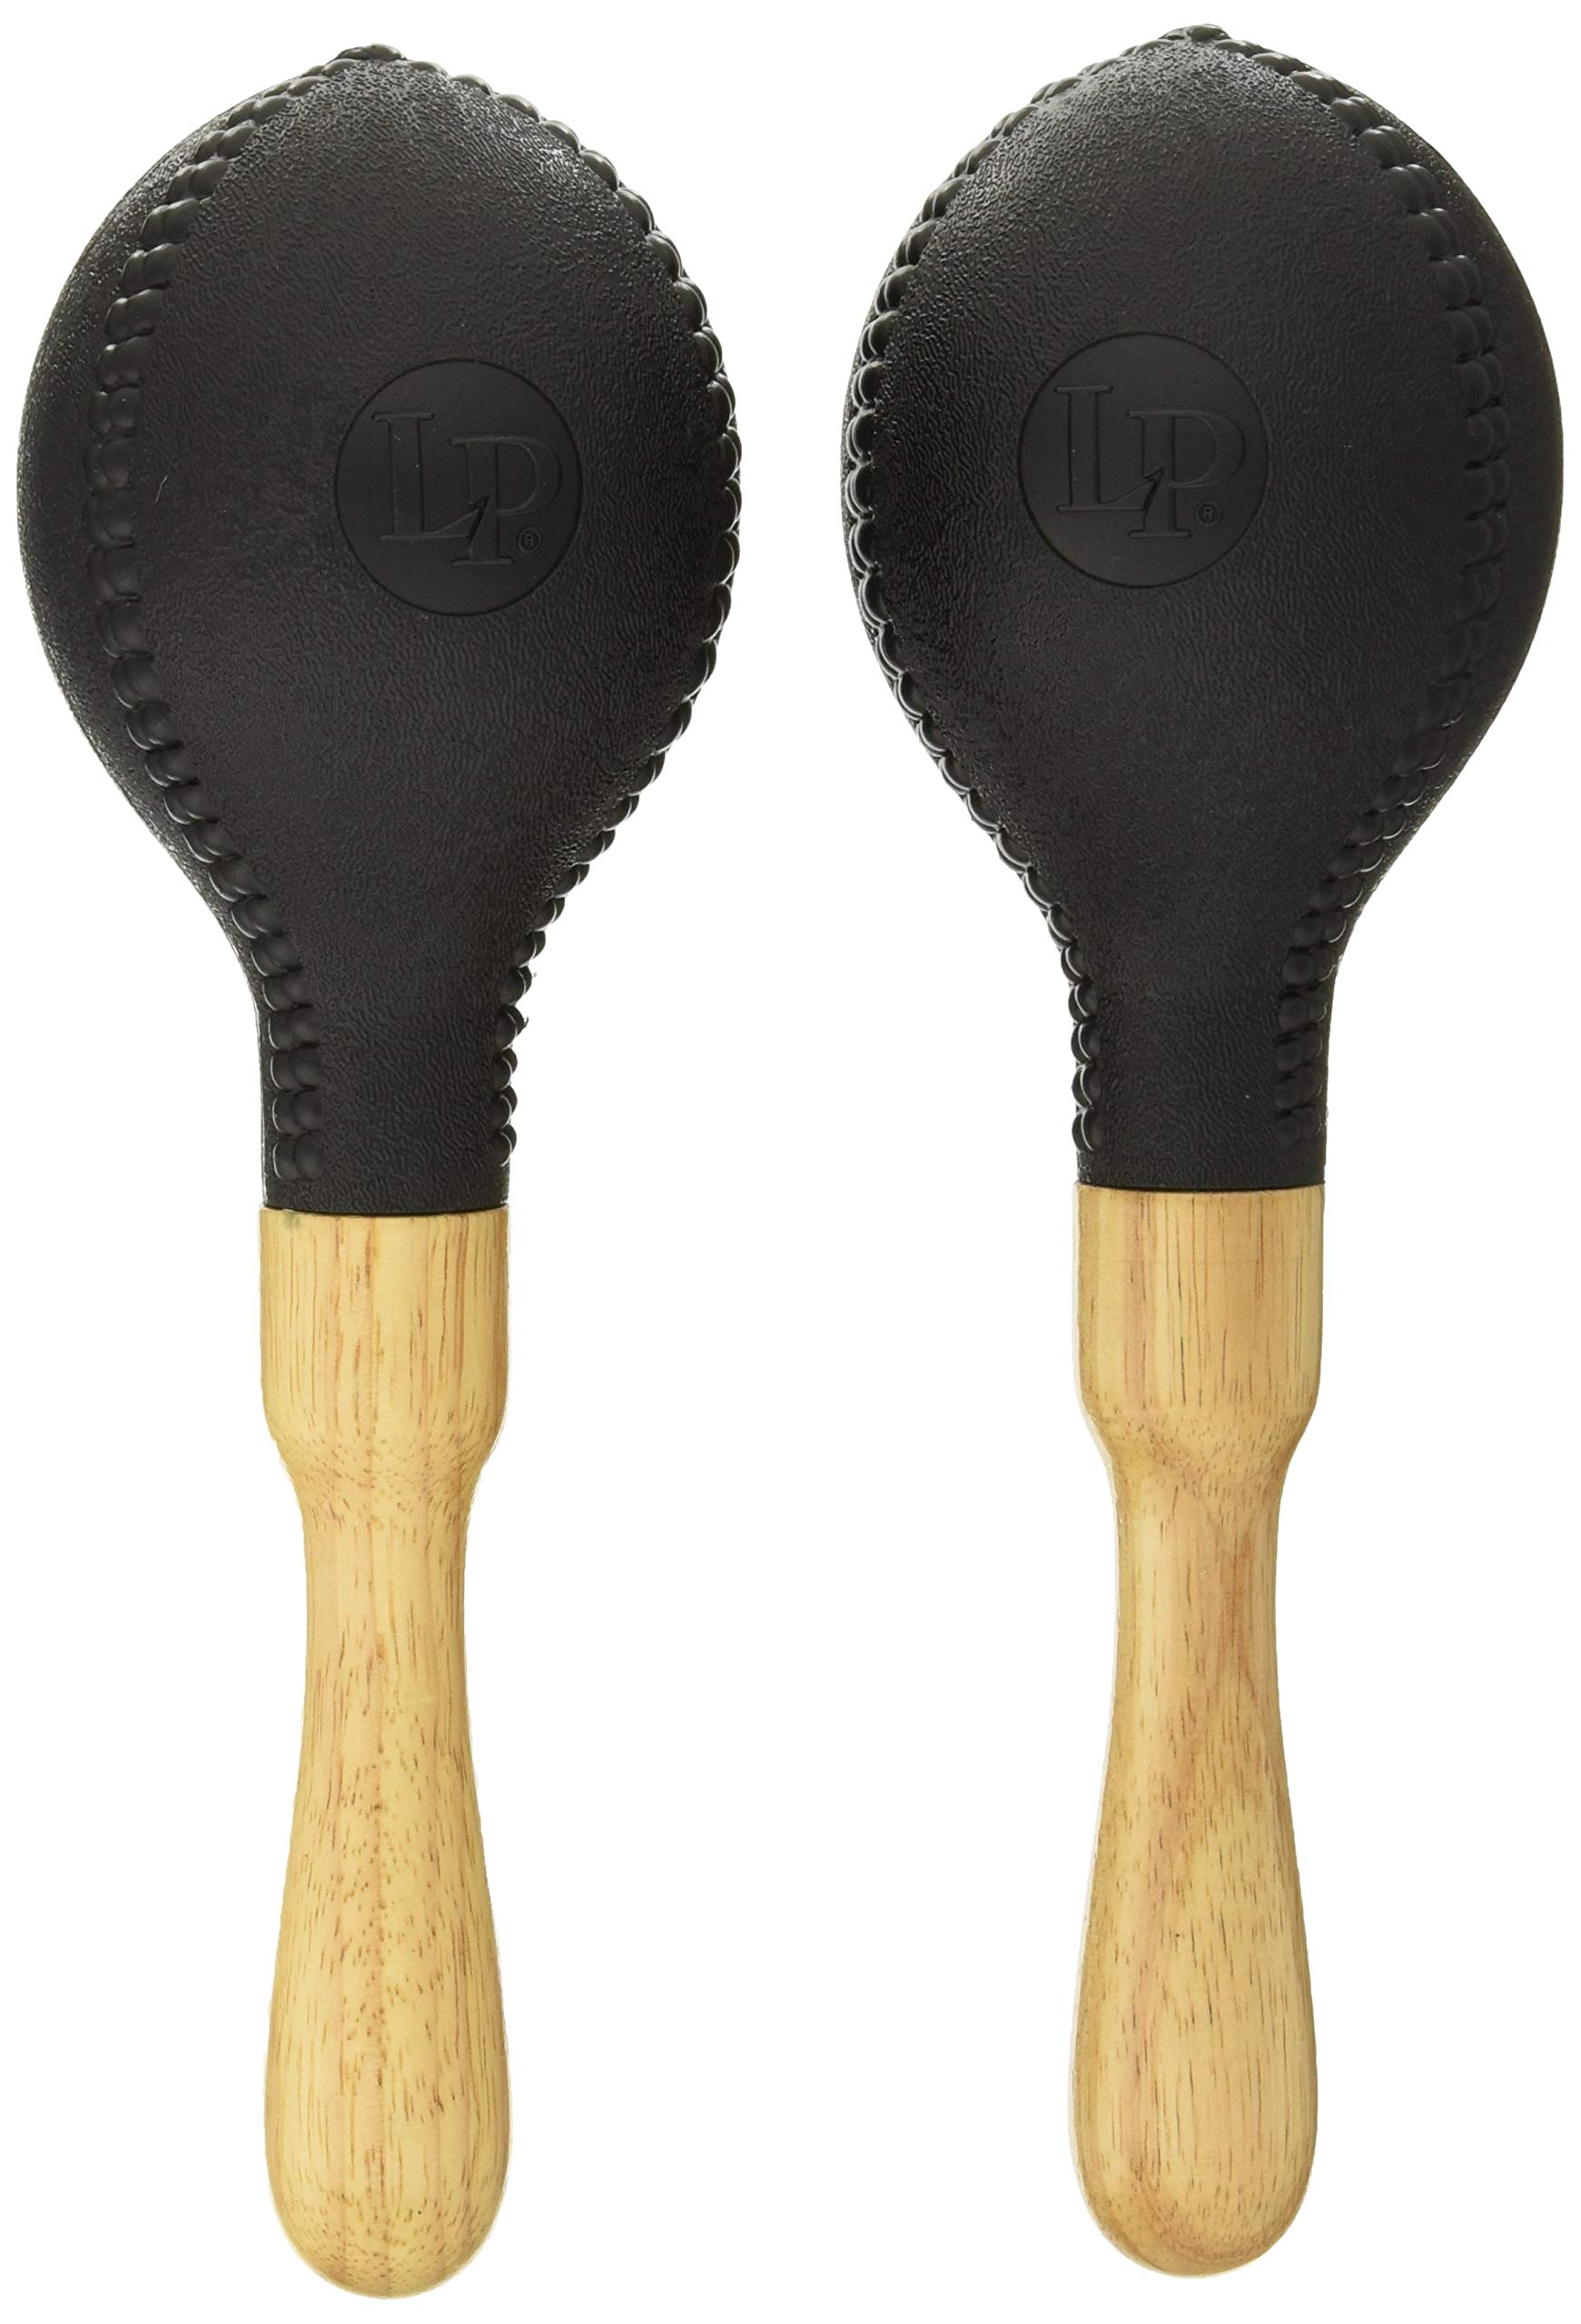 Latin Percussion LP281R Refillable Maracas by Latin Percussion